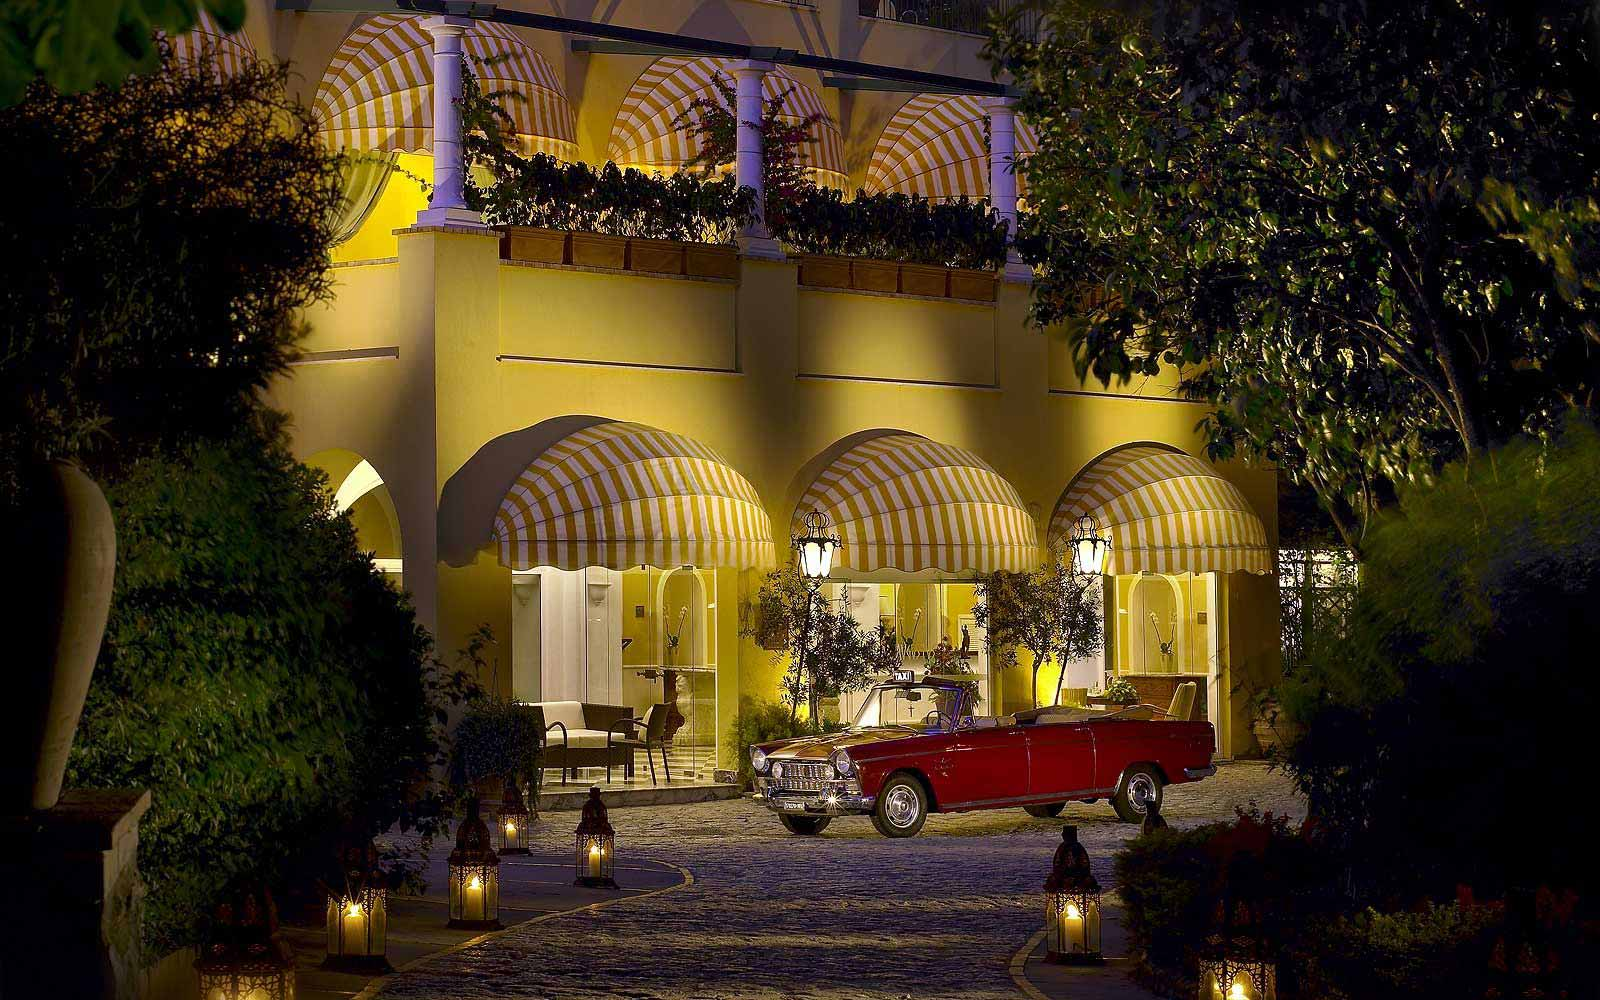 Entrance to the Hotel Caesar Augustus